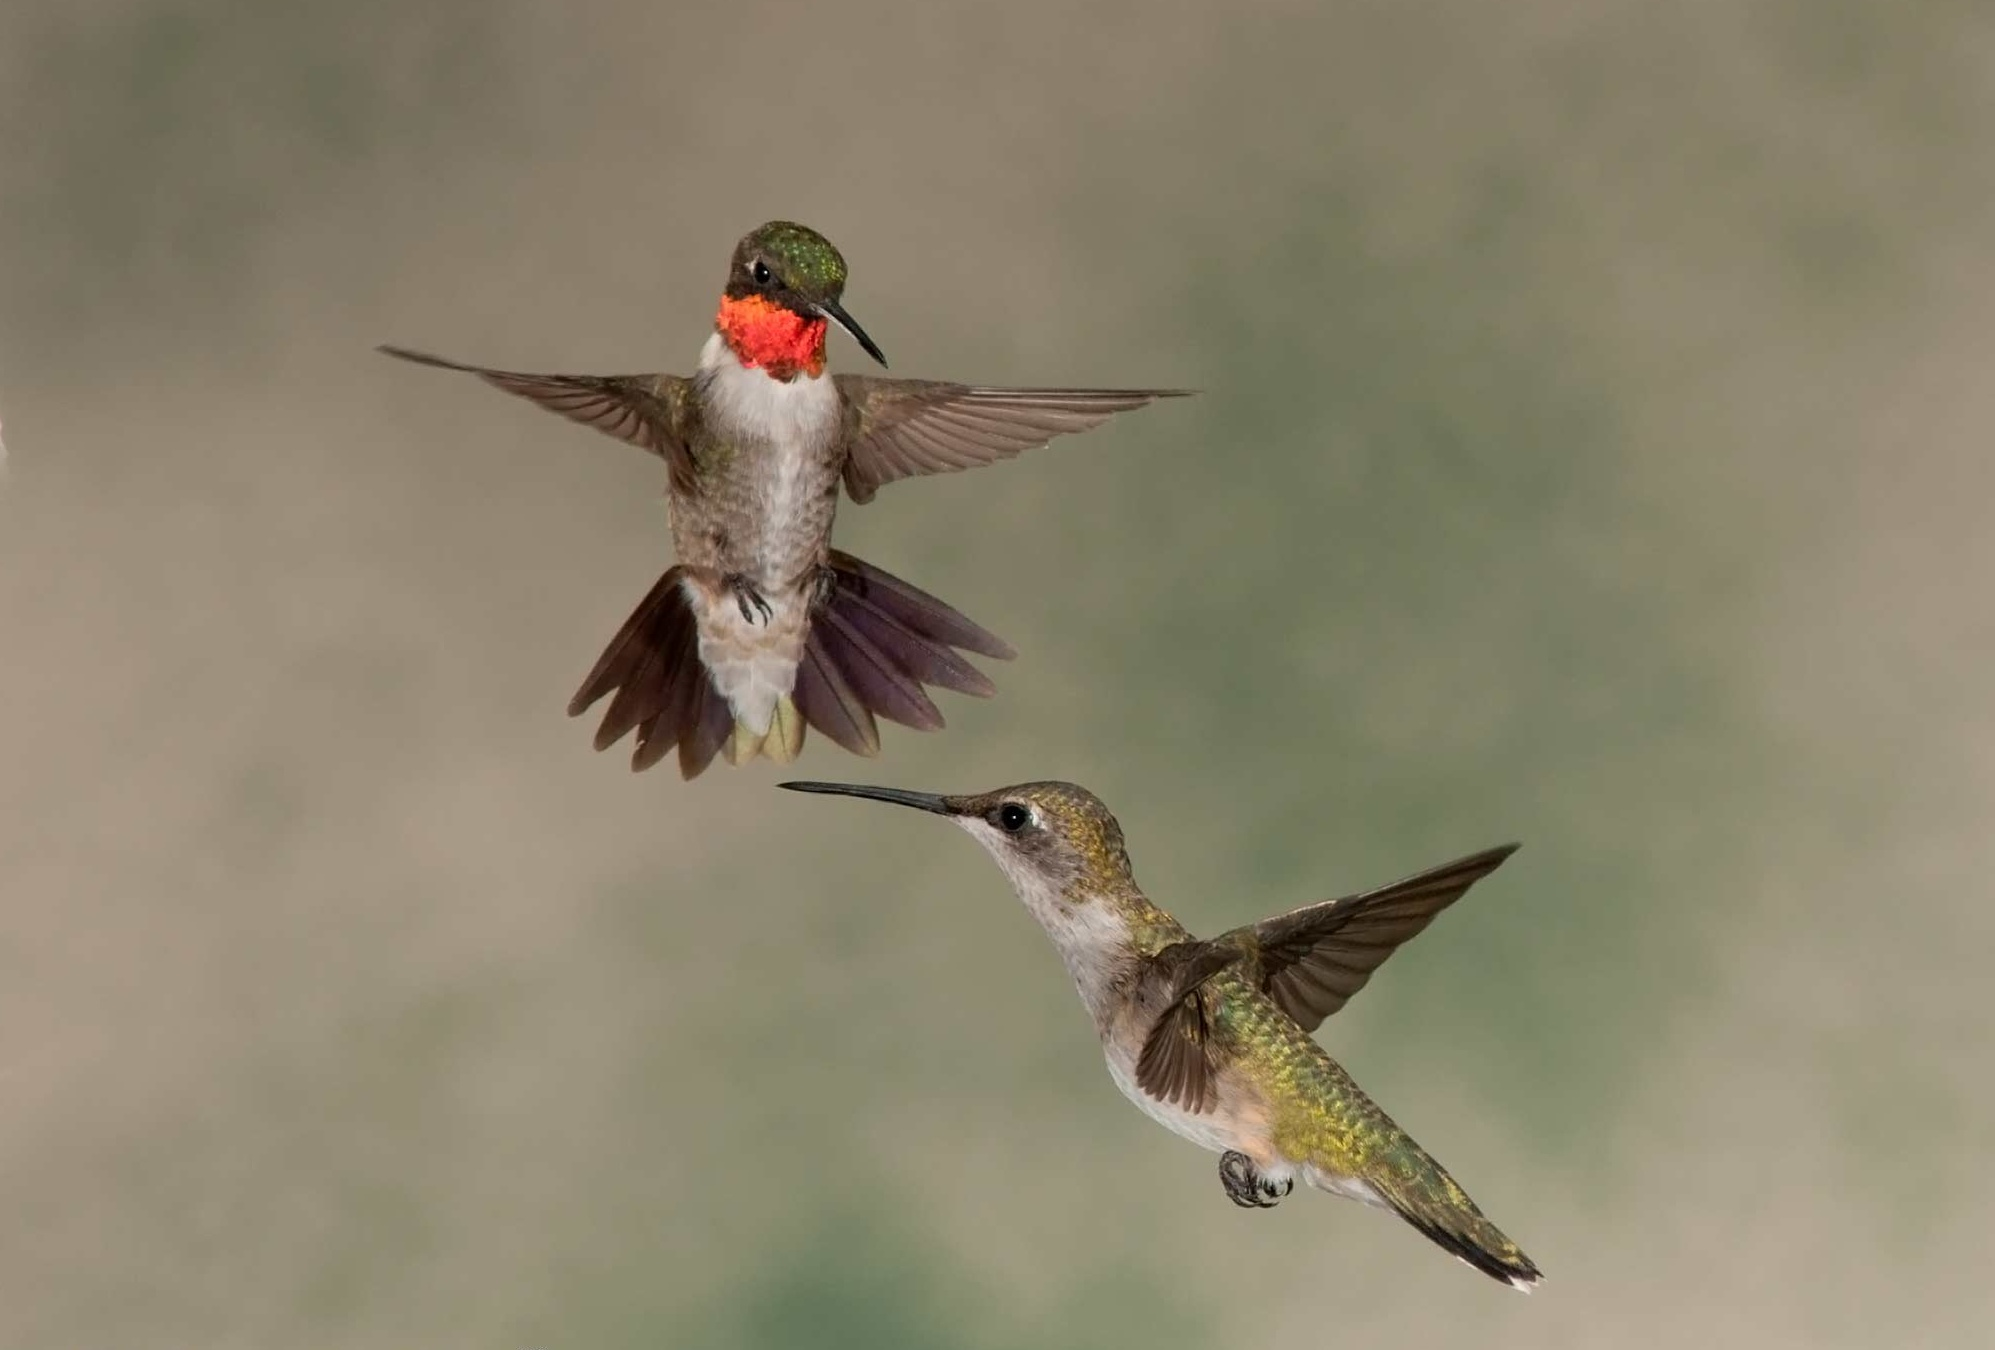 Ruby-throated Hummingbird Aggressive Behavior